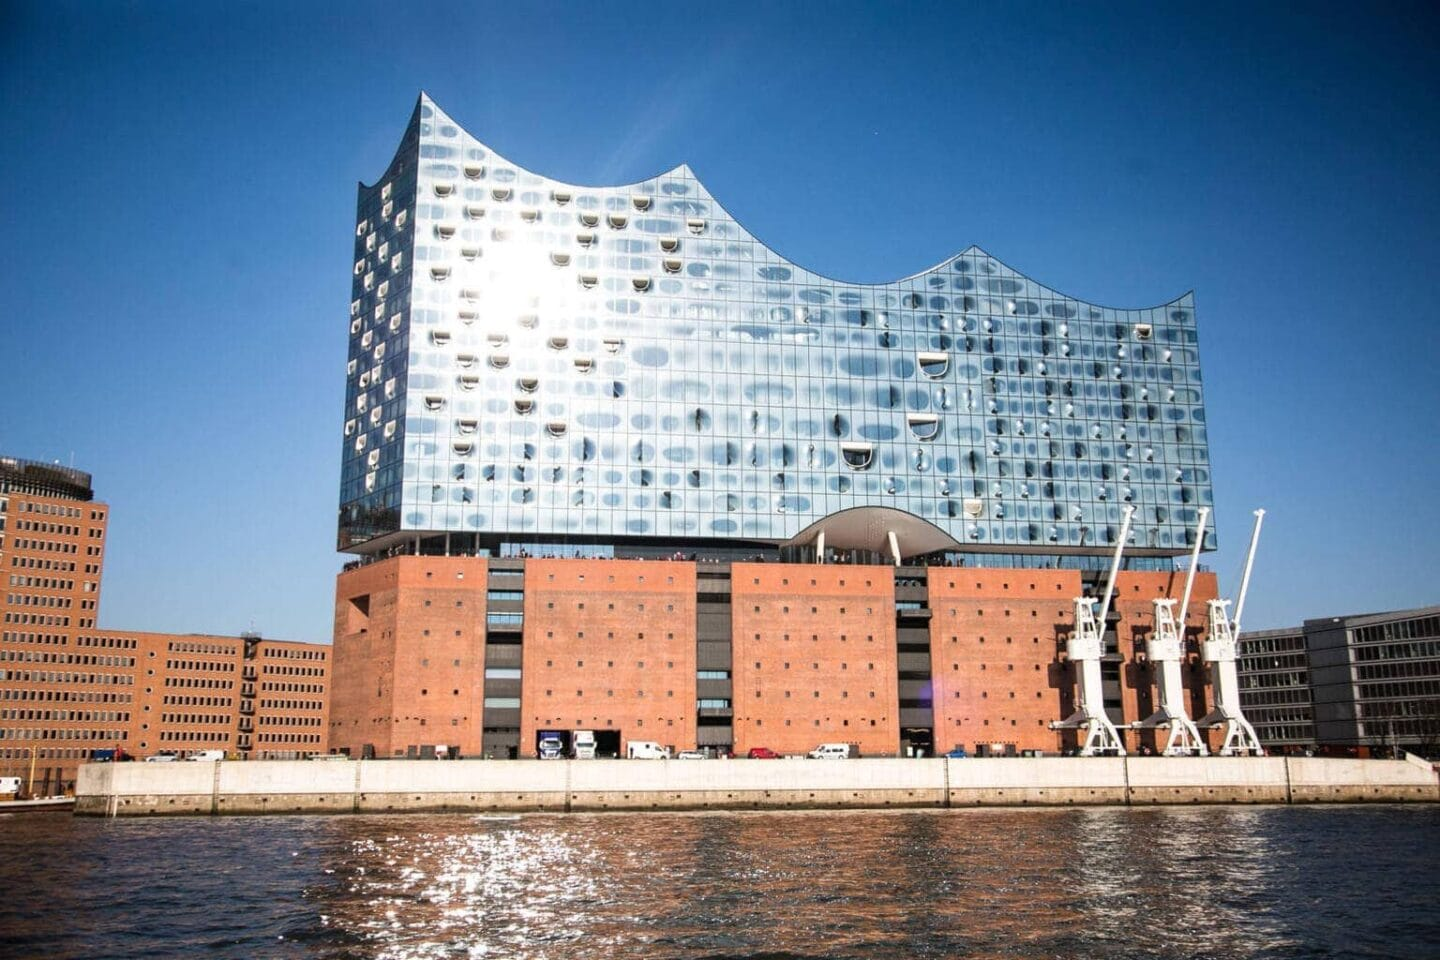 The Elbphilharmonie Plaza with Kids | Things to do in Hamburg with Kids